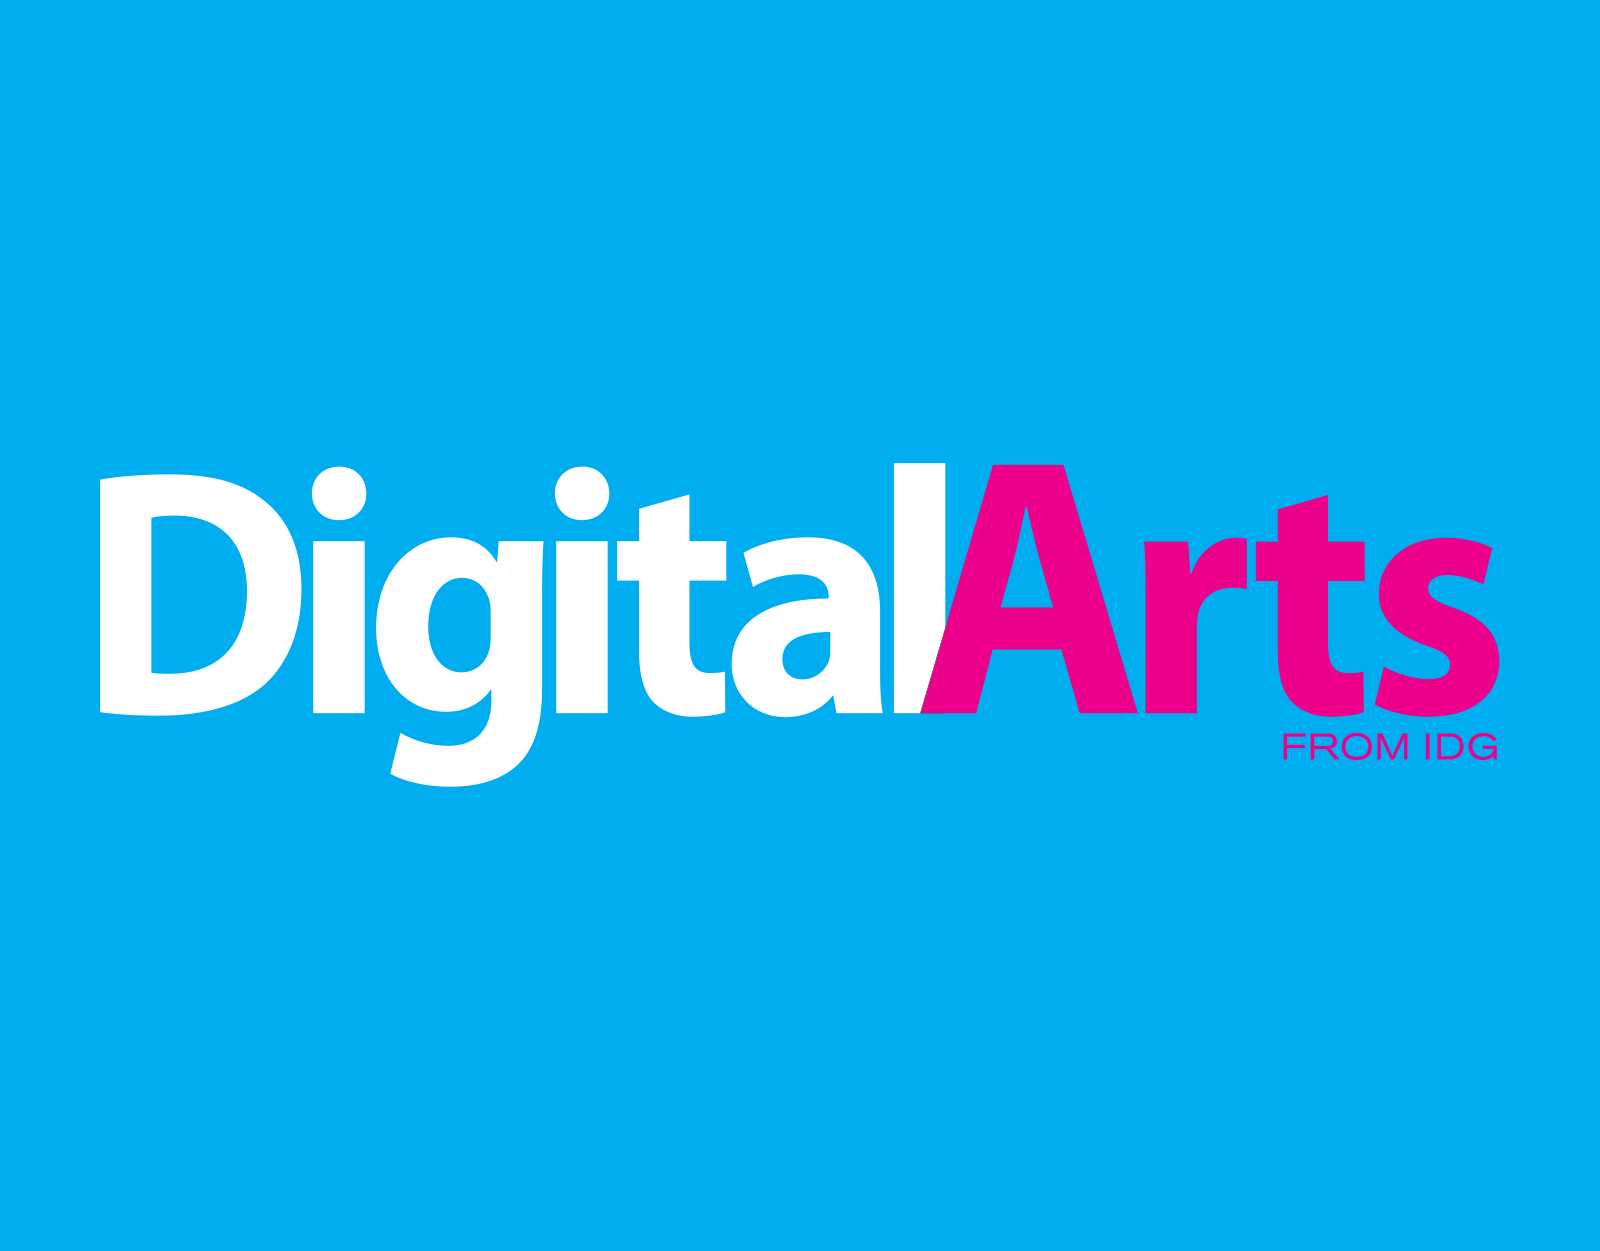 Digital Arts Masterclass